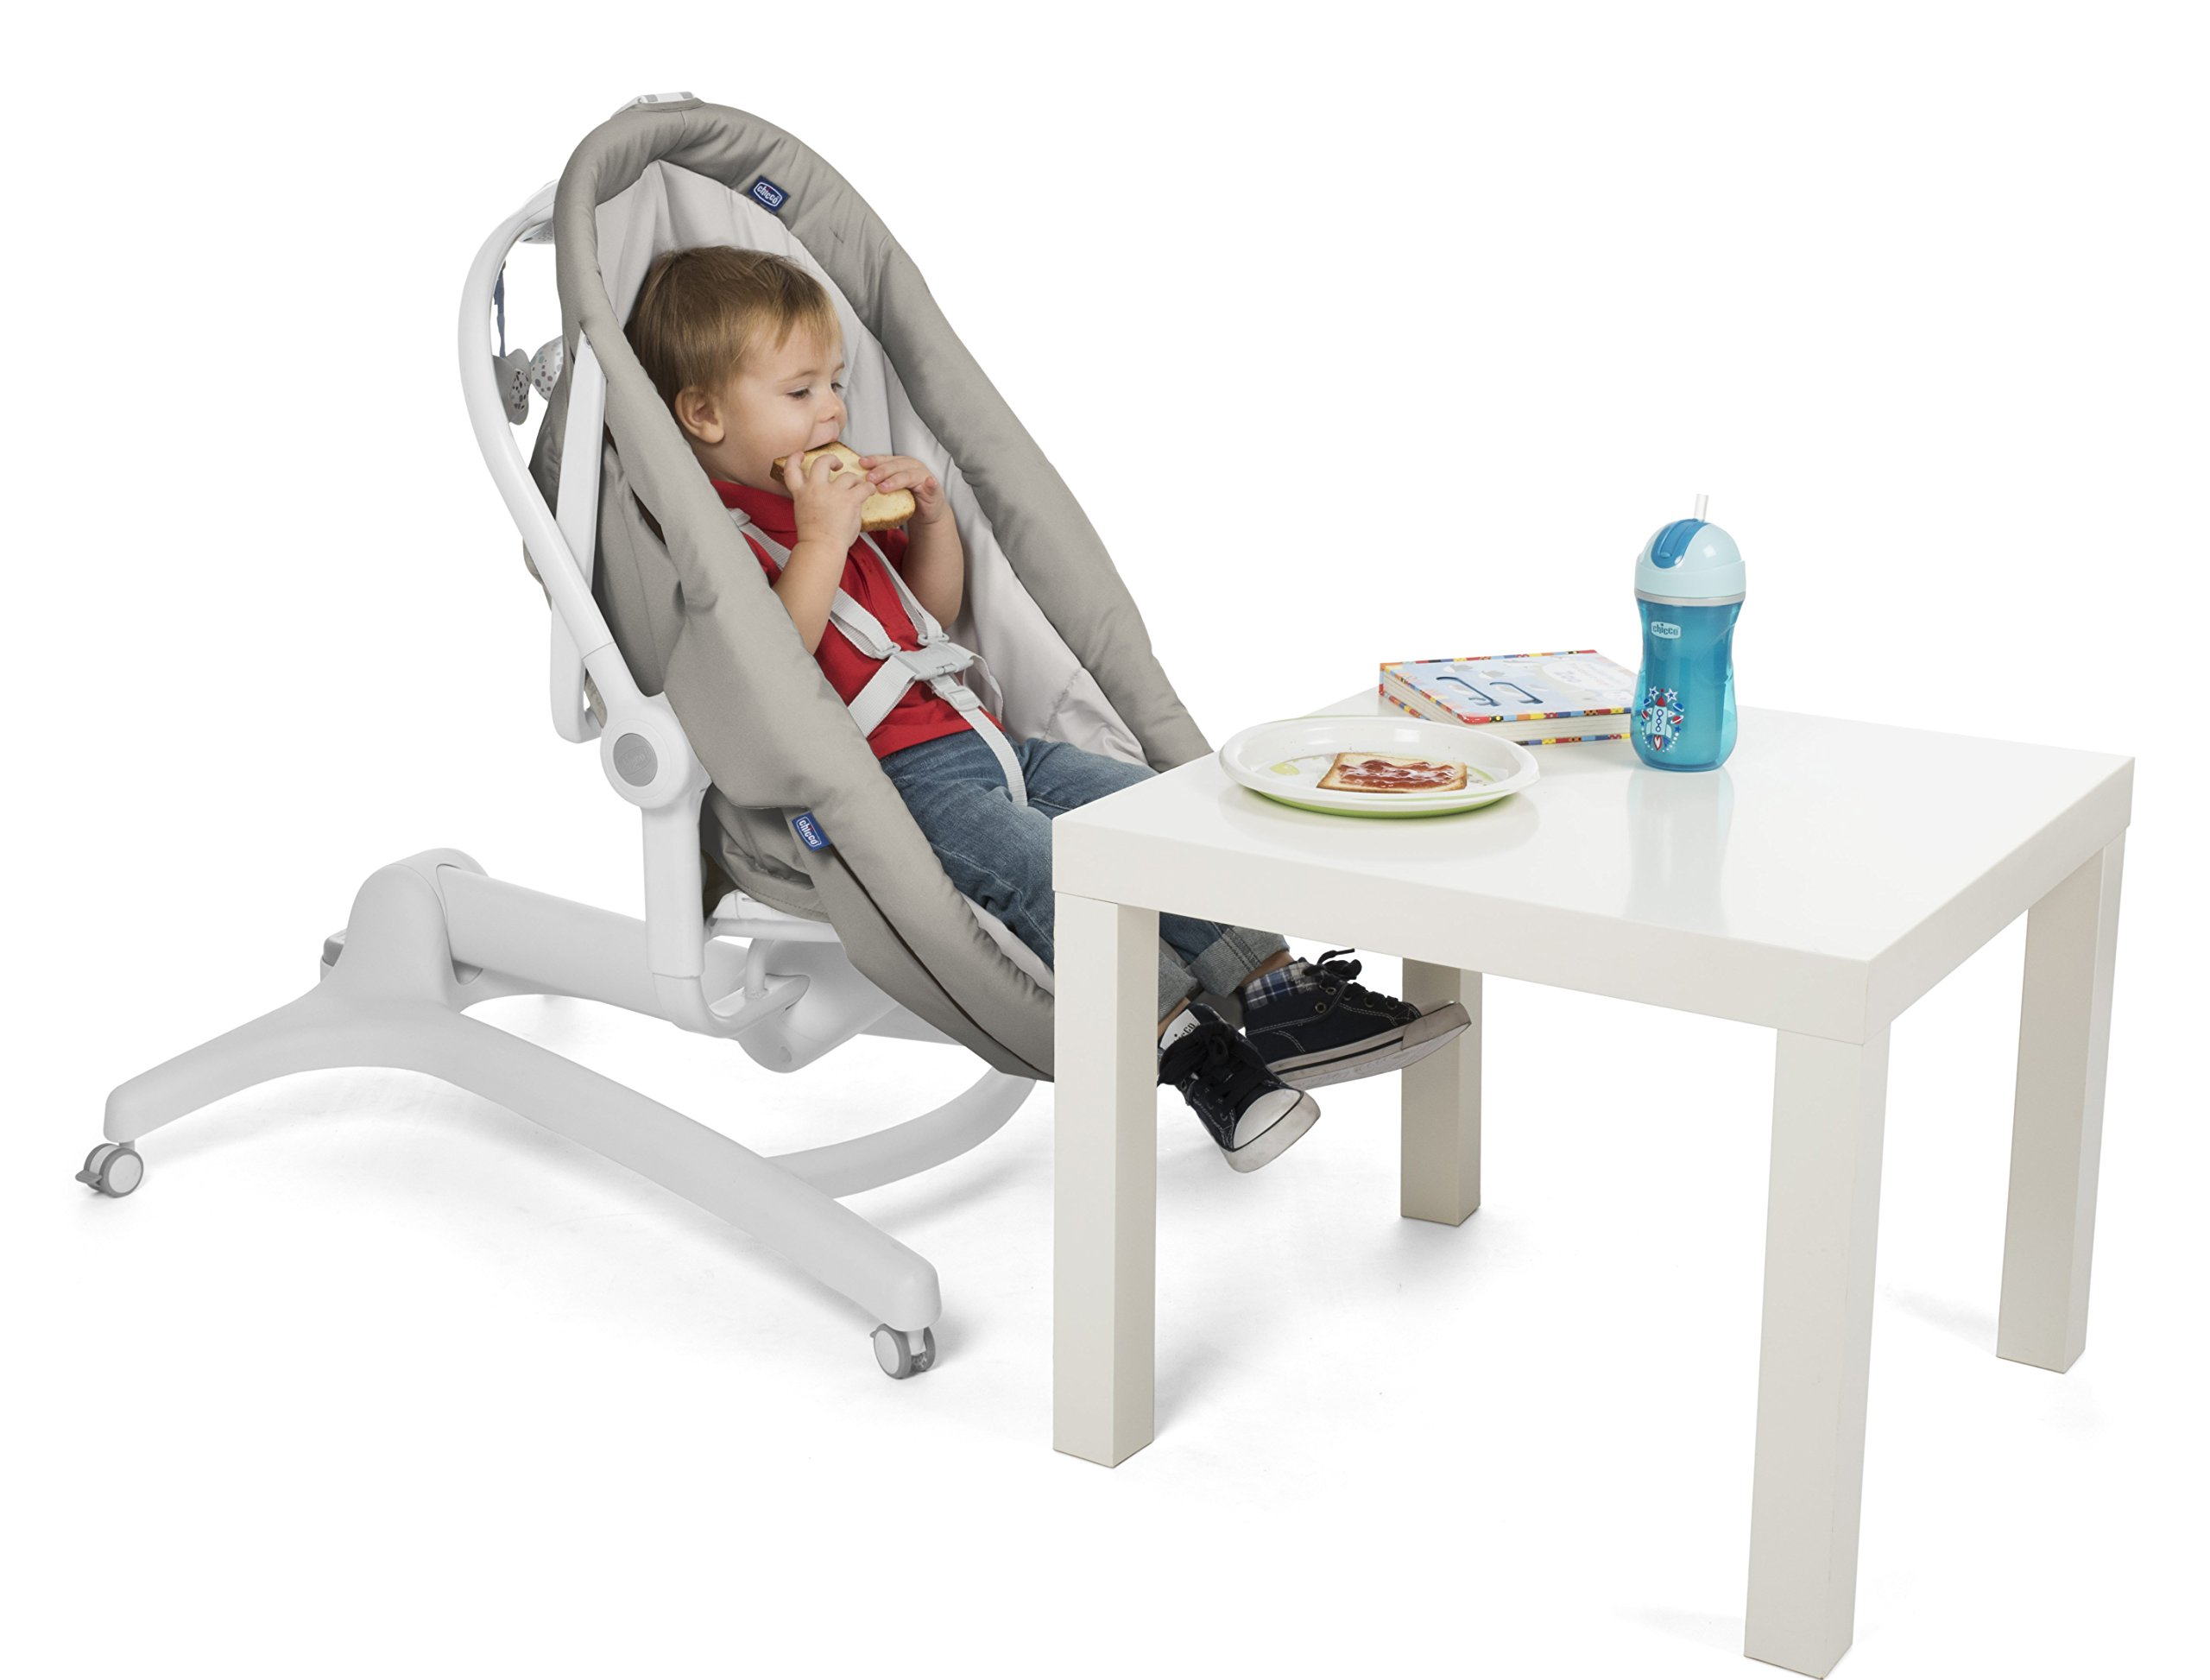 Chicco Baby Hug 4 in 1, Legend  It covers all your and your baby's needs: it is a comfy crib, a recliner from birth, a convenient highchair and finally your child's first chair from 6 months. Adjustable heights and backrest and 4 wheels Removable reducer to make the recliner suitable from birth 5